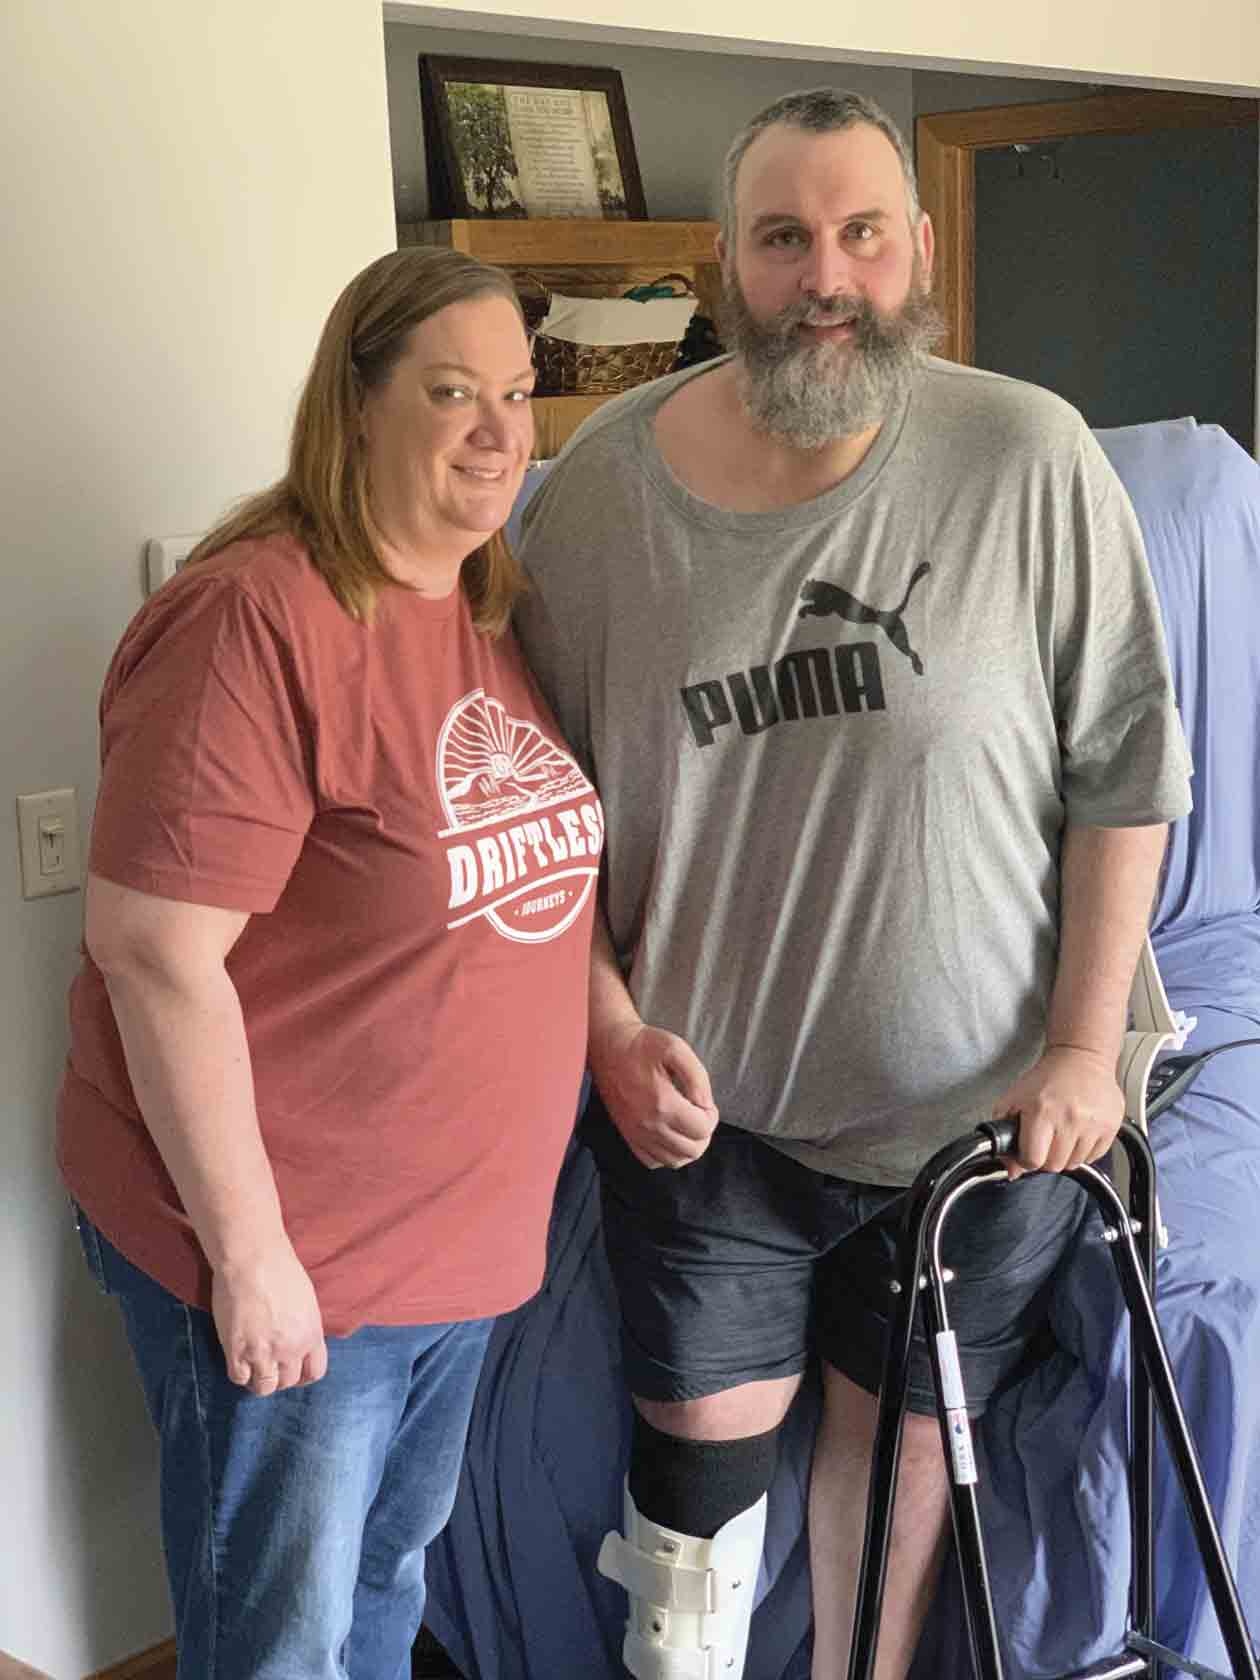 For Spillville's Becky and Jeremy Walz and their family, the past year has been one of the most difficult as Jeremy suffered a stroke in March that left him fighting for his life. Despite the many challenges encountered, the family is extra thankful this holiday season to be able to celebrate...